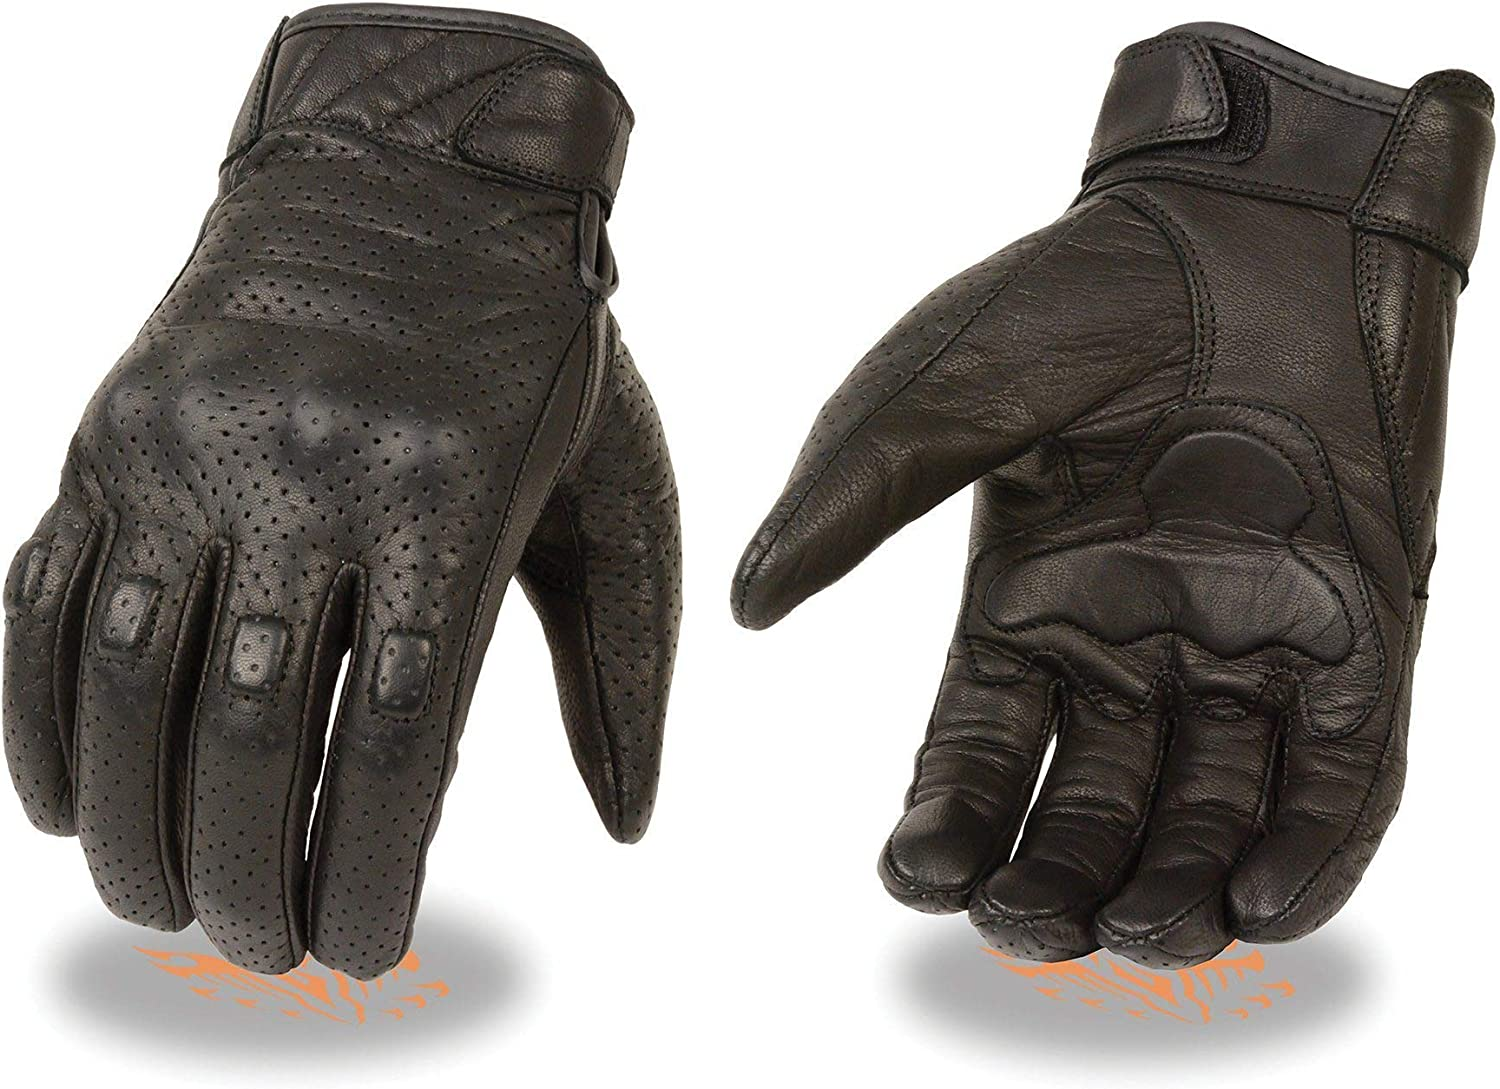 Milwaukee Leather MG7500 Men's Black Perforated Leather Gloves with Rubberized Knuckles - 3X-Large